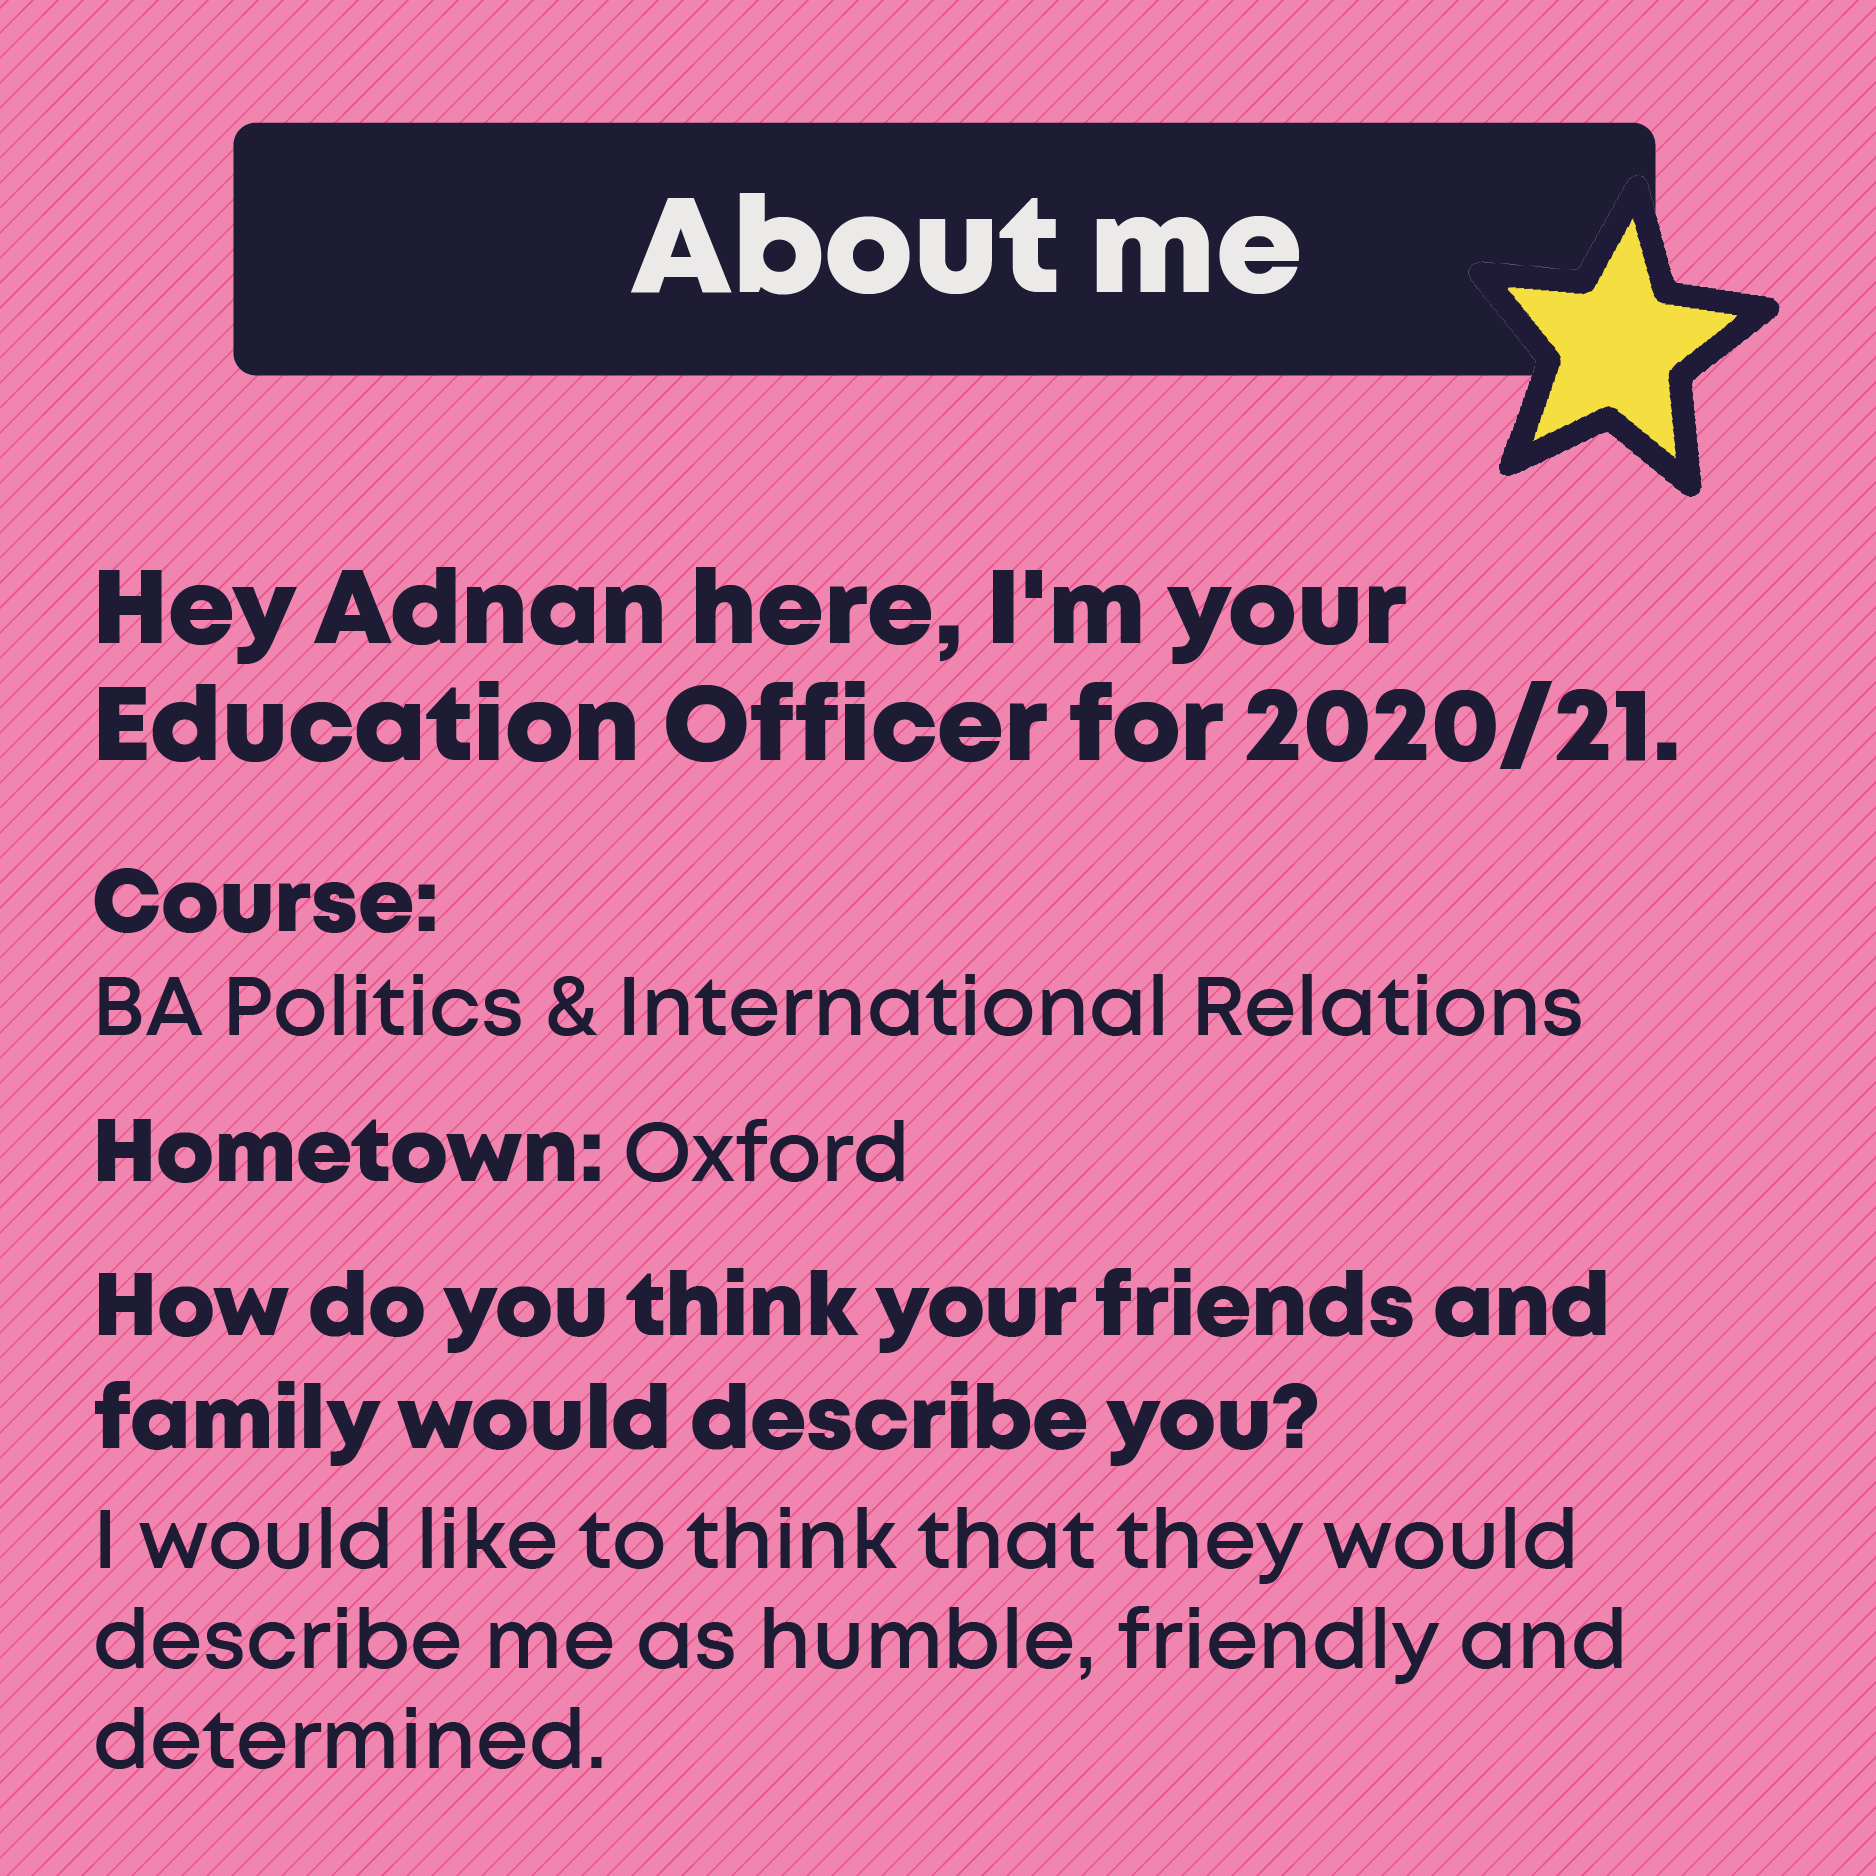 About me. Hey Adnan here, I'm your  Education Officer for 2020/21. Course: BA Politics & International Relations. Hometown: Oxford. How do you think your friends and family would describe you? I would like to think that they would describe me as humble, friendly and determined.